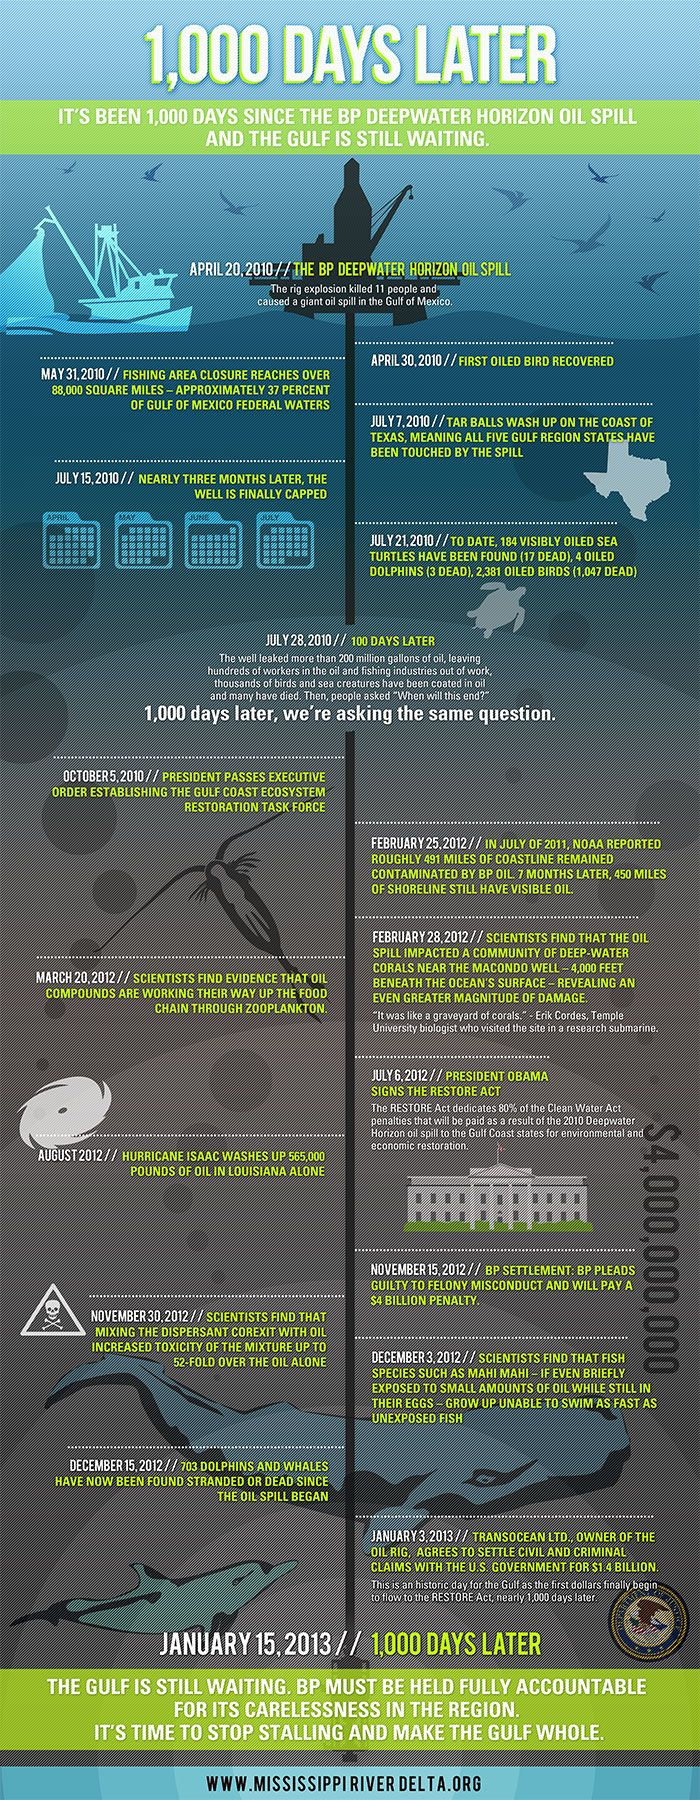 BP Oil Spill 1,000 Days Later [Infographic] --- British Petroleum, BP, Oil spill, Gulf of Mexico, still hasn't paid, wildlife, coastal, death, ecosystems, fishing, refineries, 200 million gallons